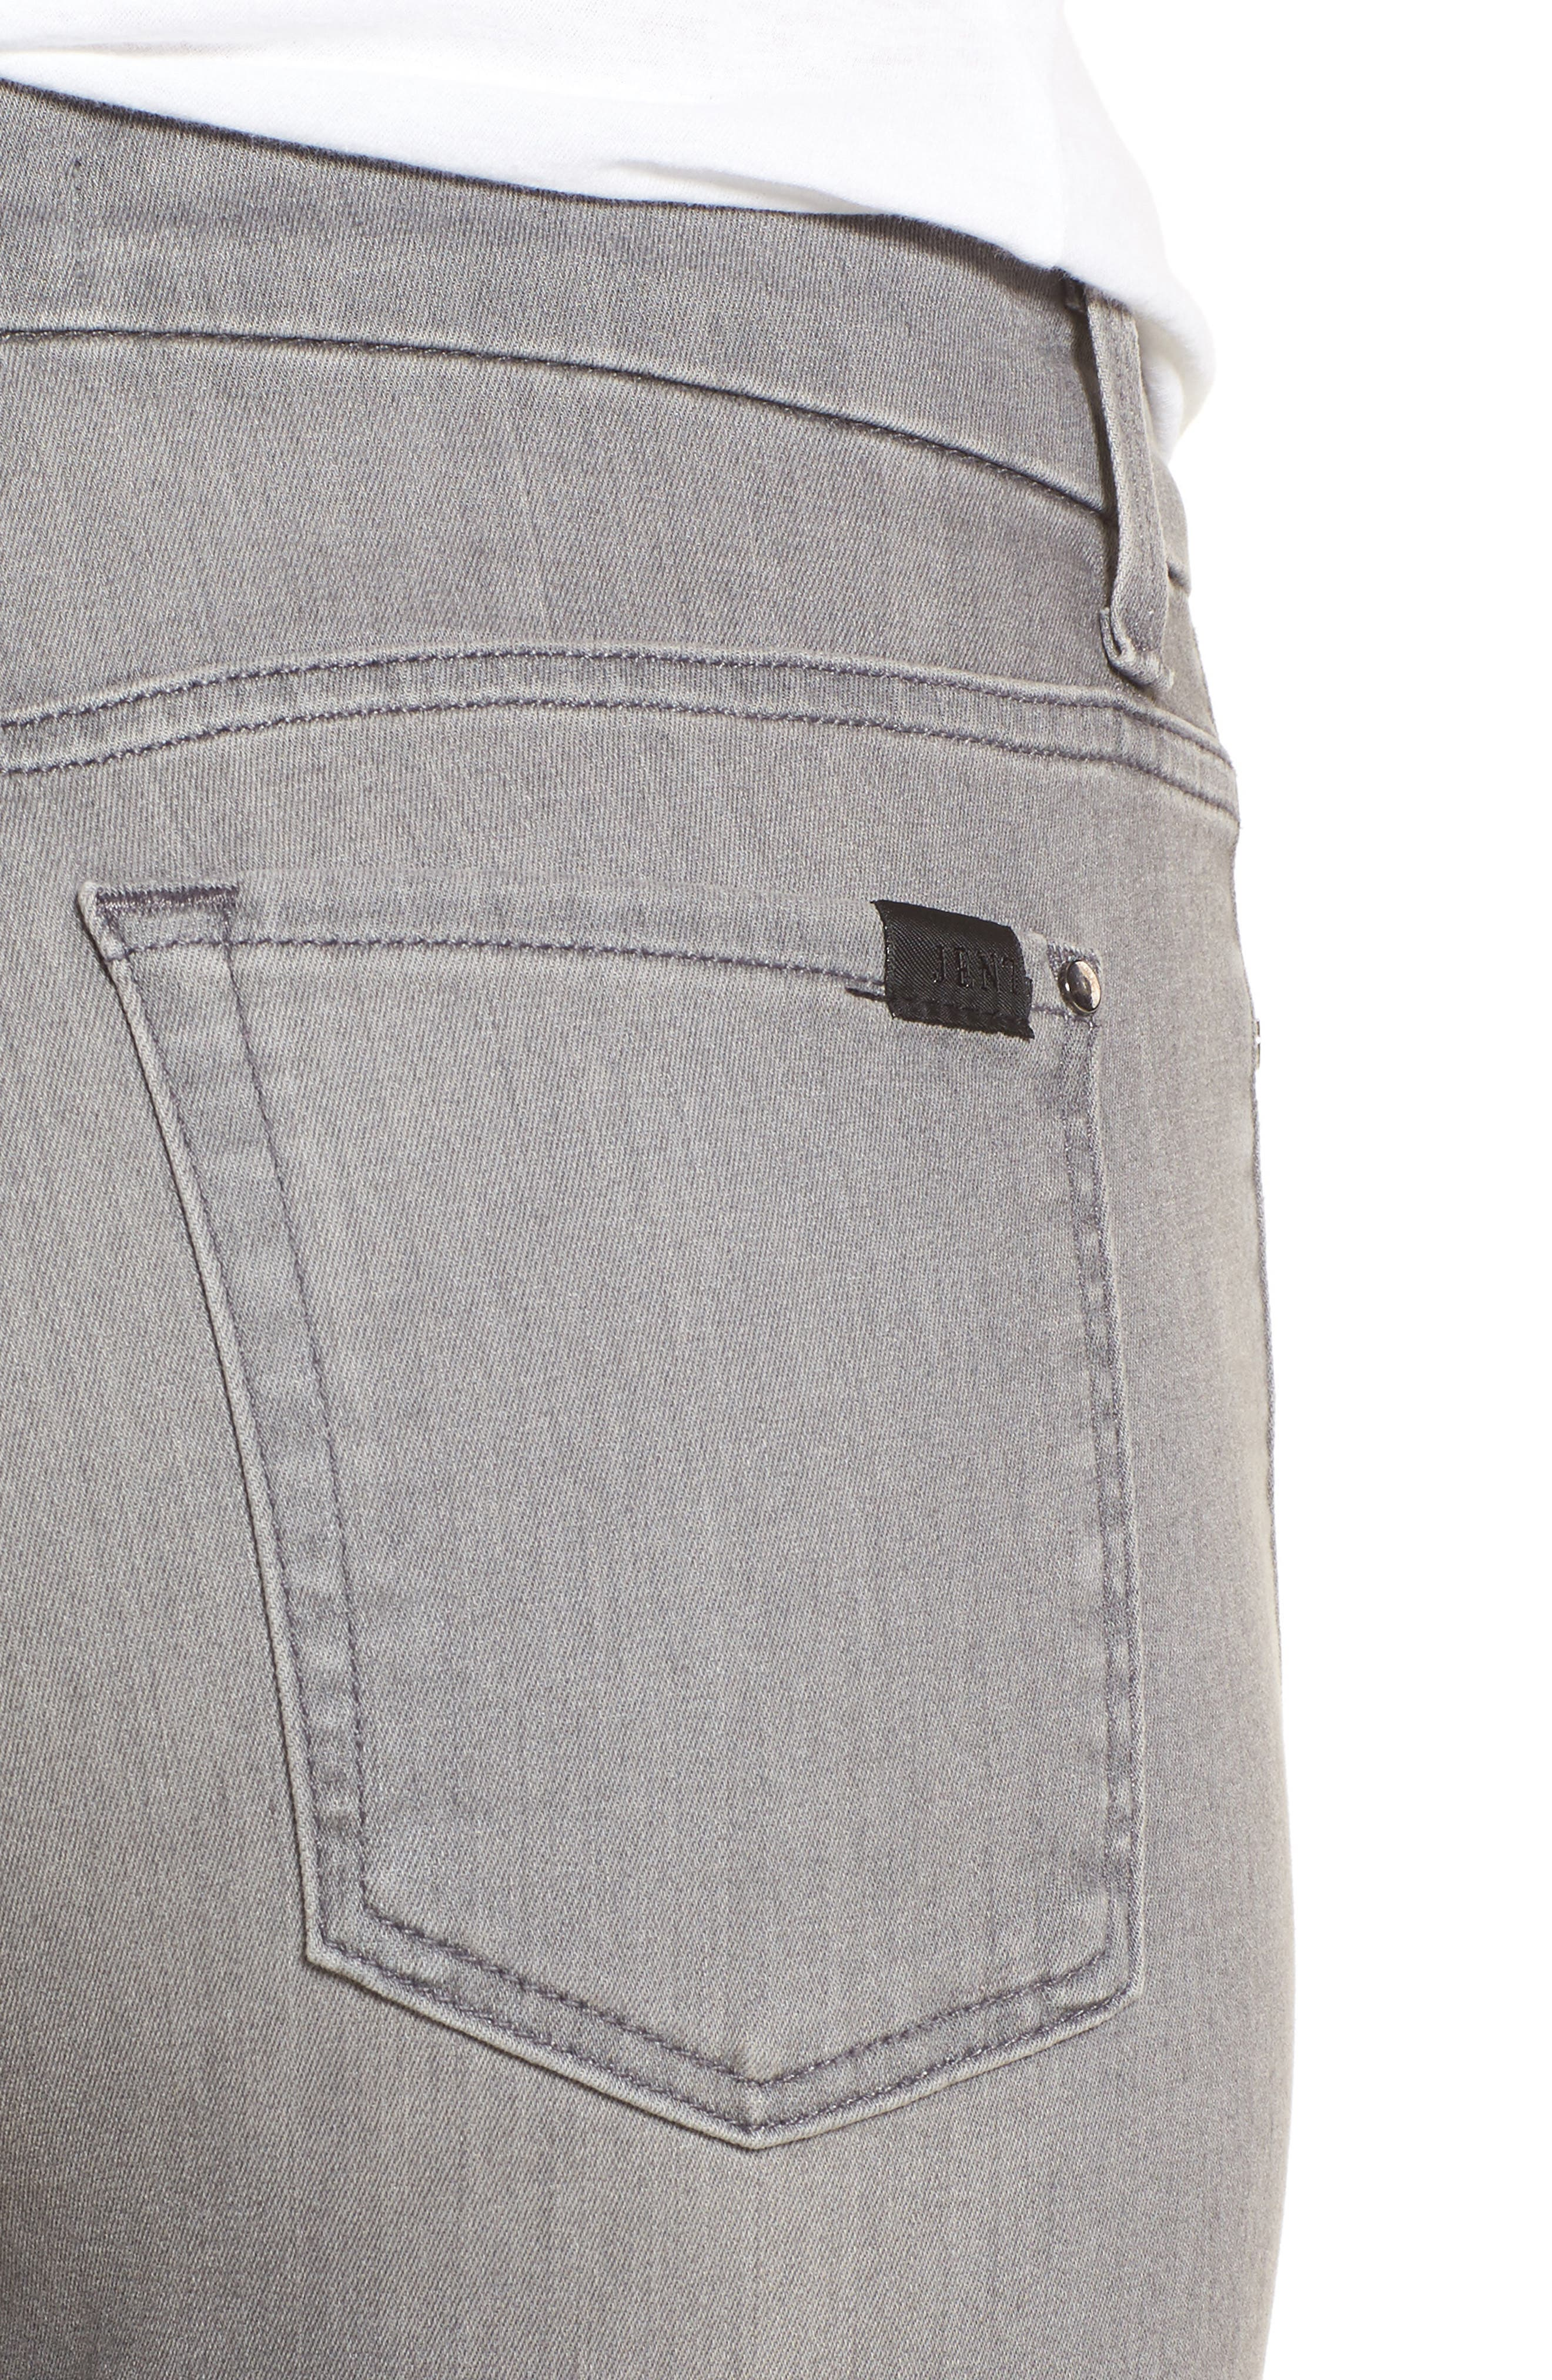 Stretch Ankle Skinny Jeans,                             Alternate thumbnail 4, color,                             RICHE TOUCH MARBLE GREY